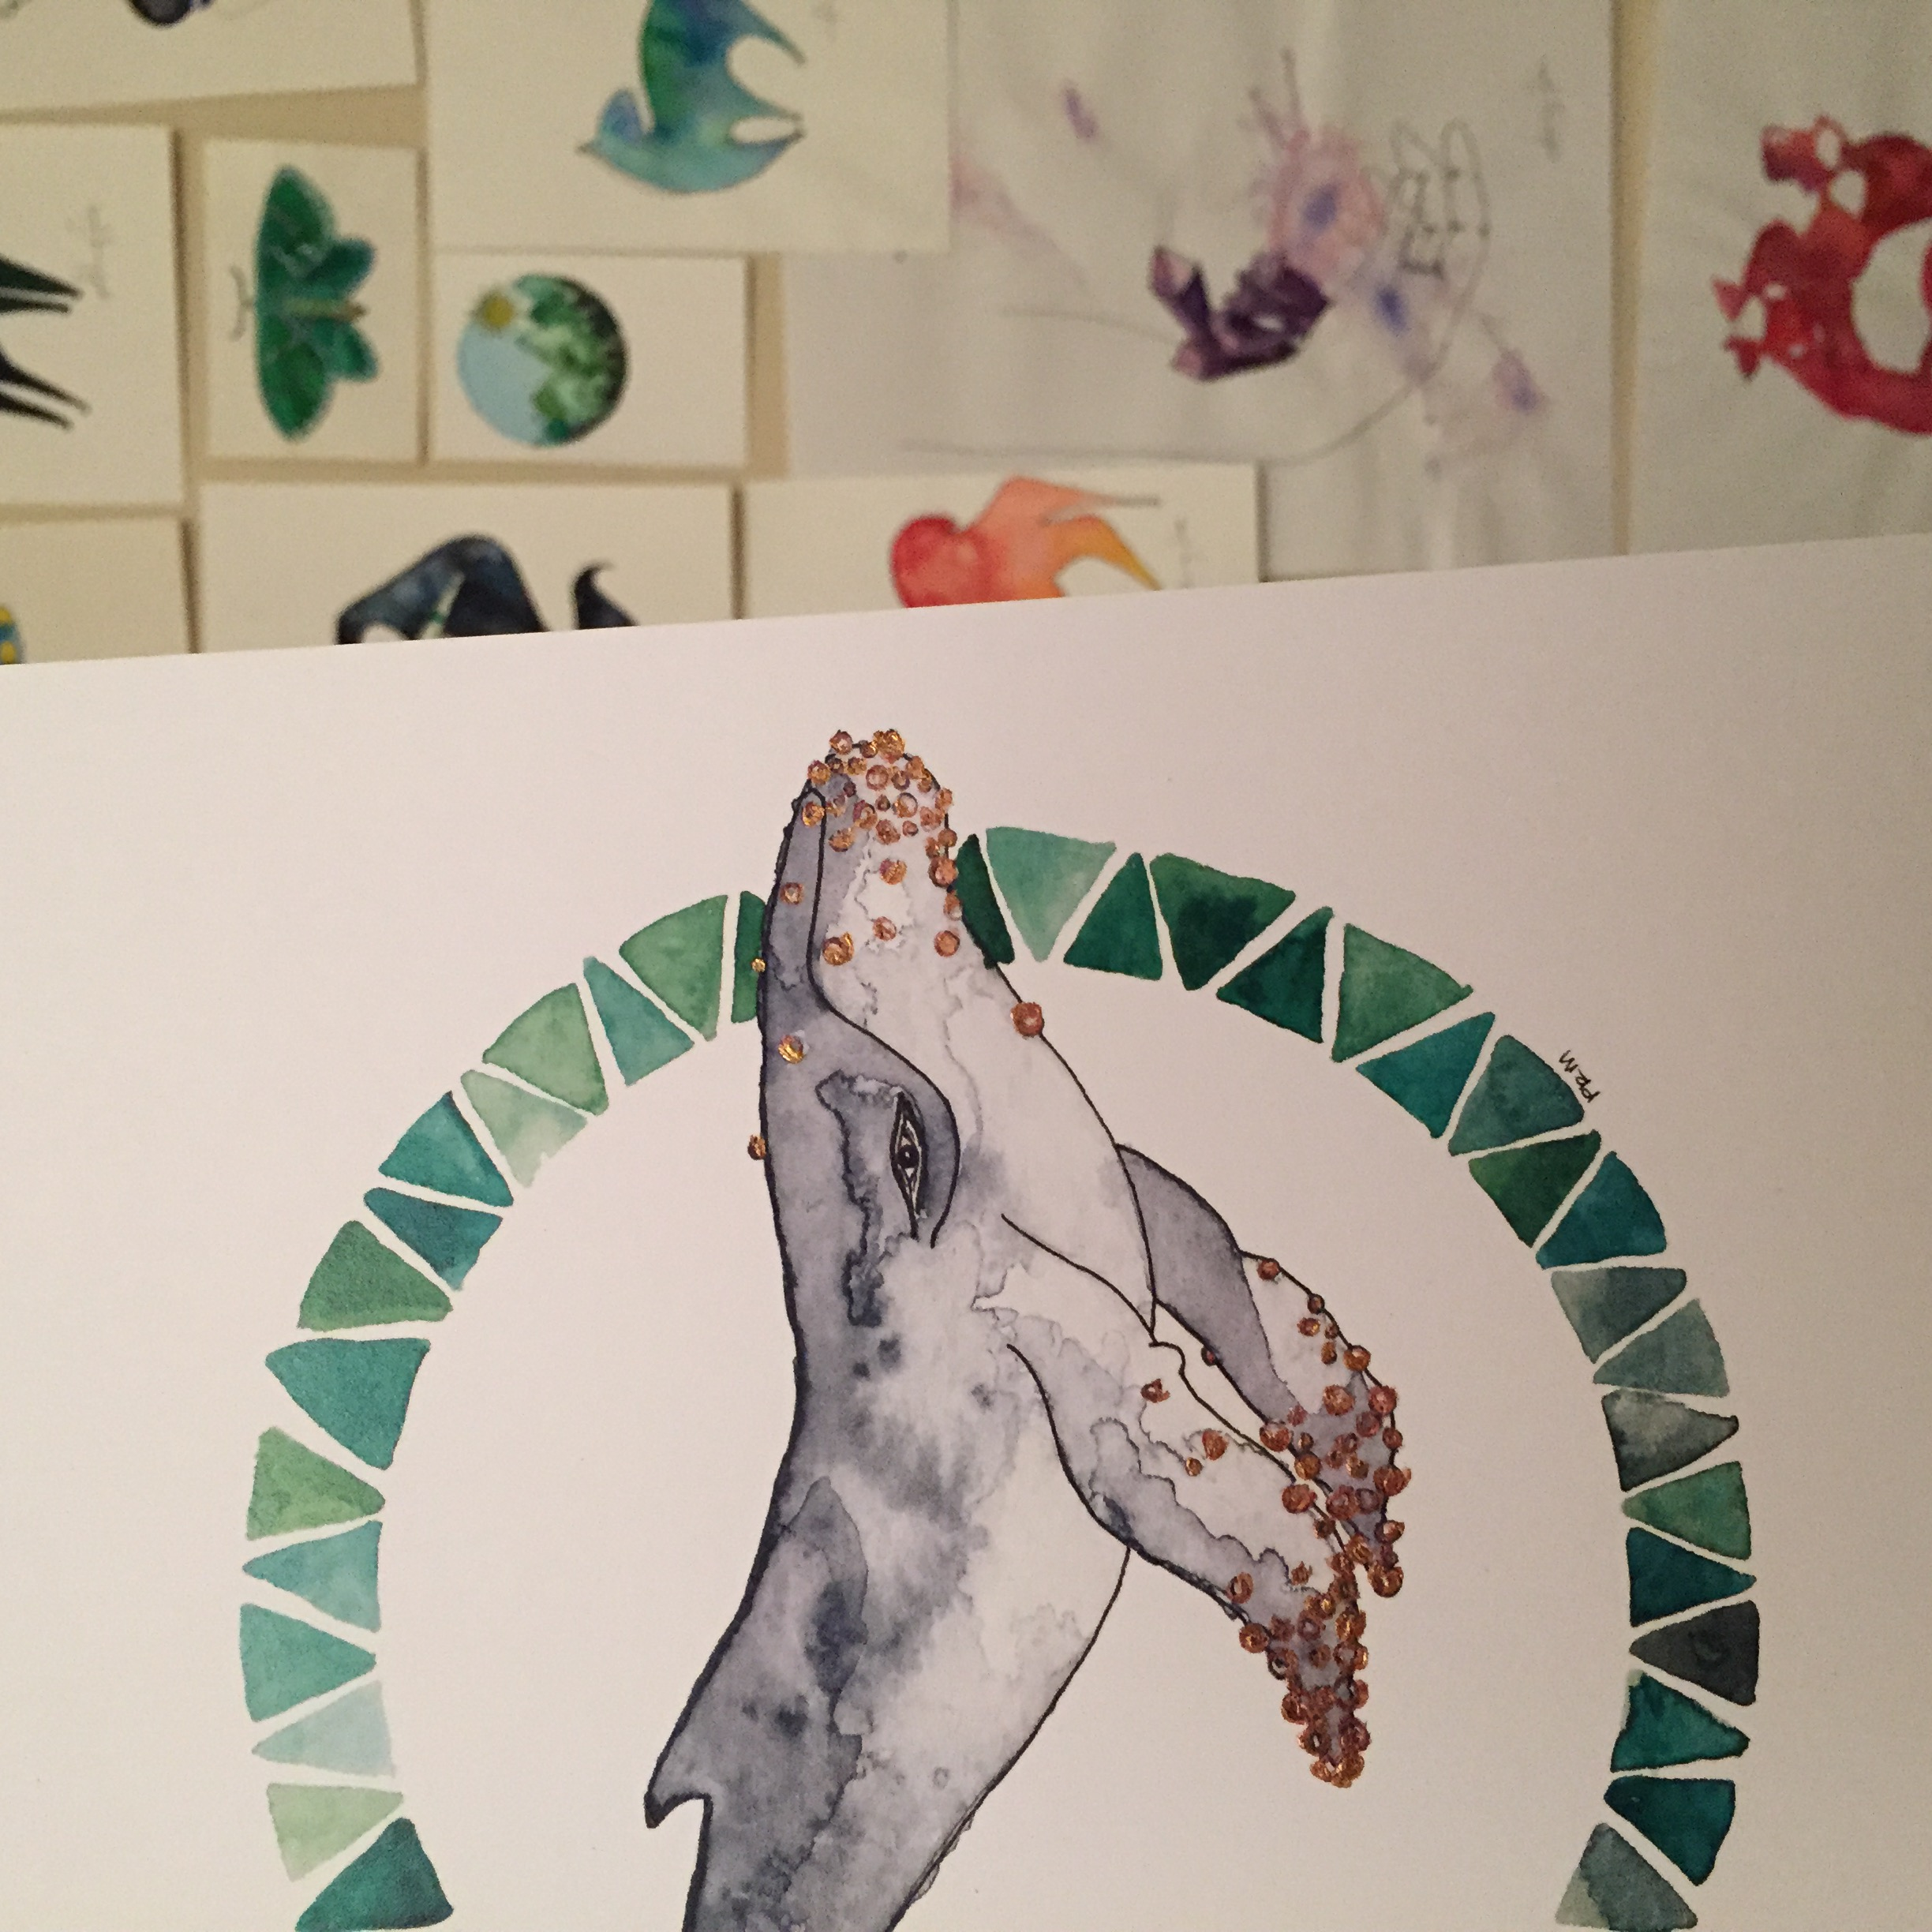 52 Hertz the whale, part of Macaulay's lonely animal series